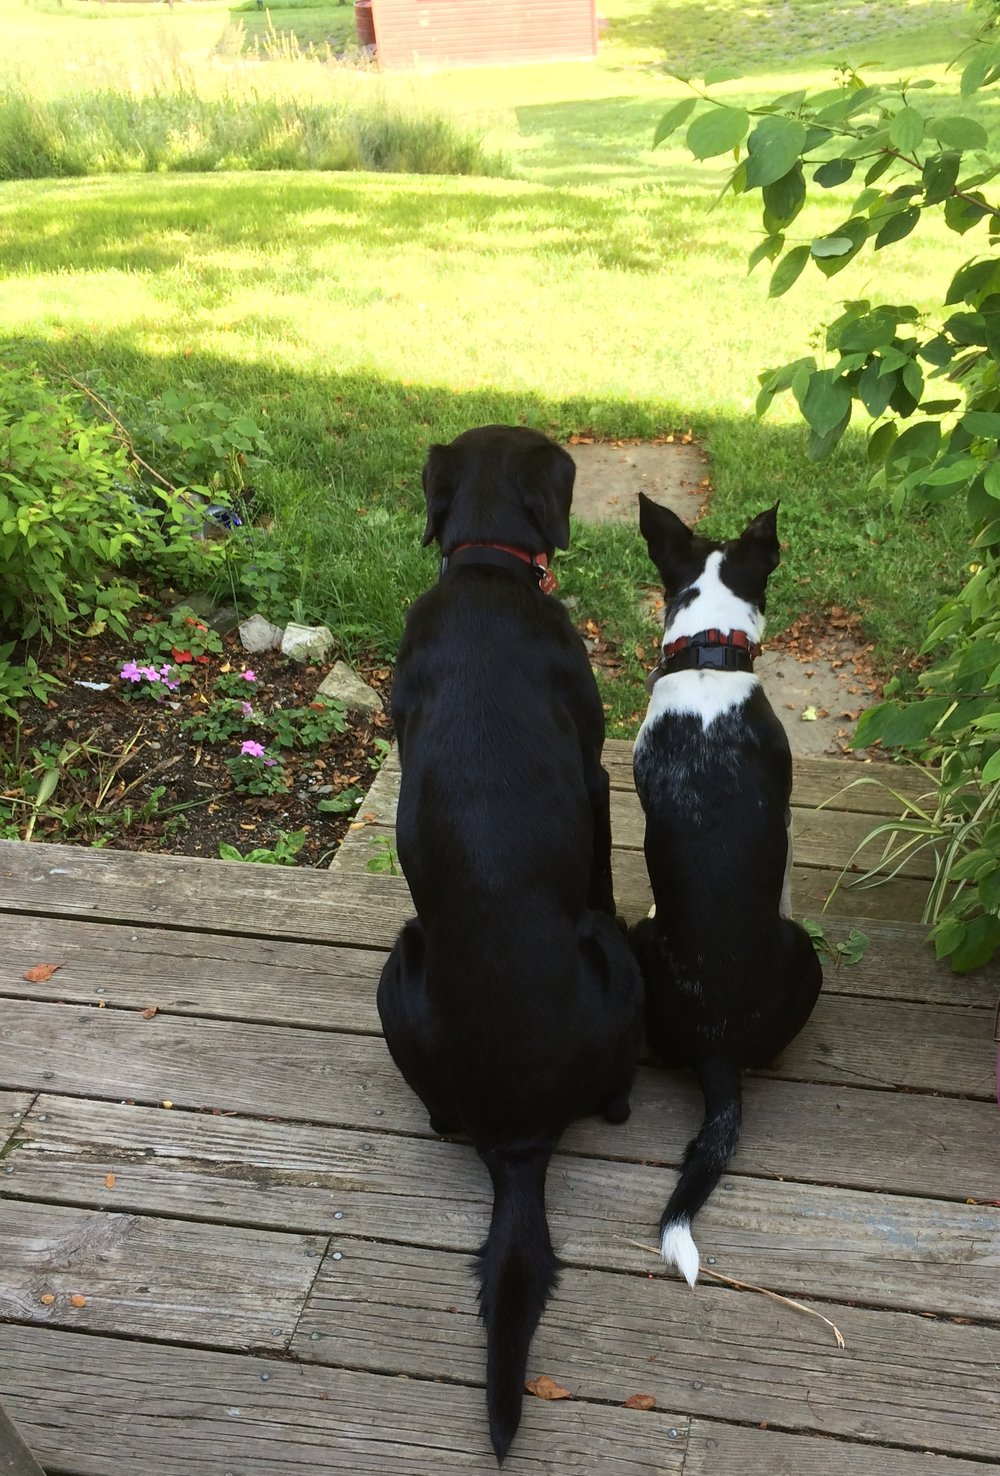 Molly and dunkin surveying their domain